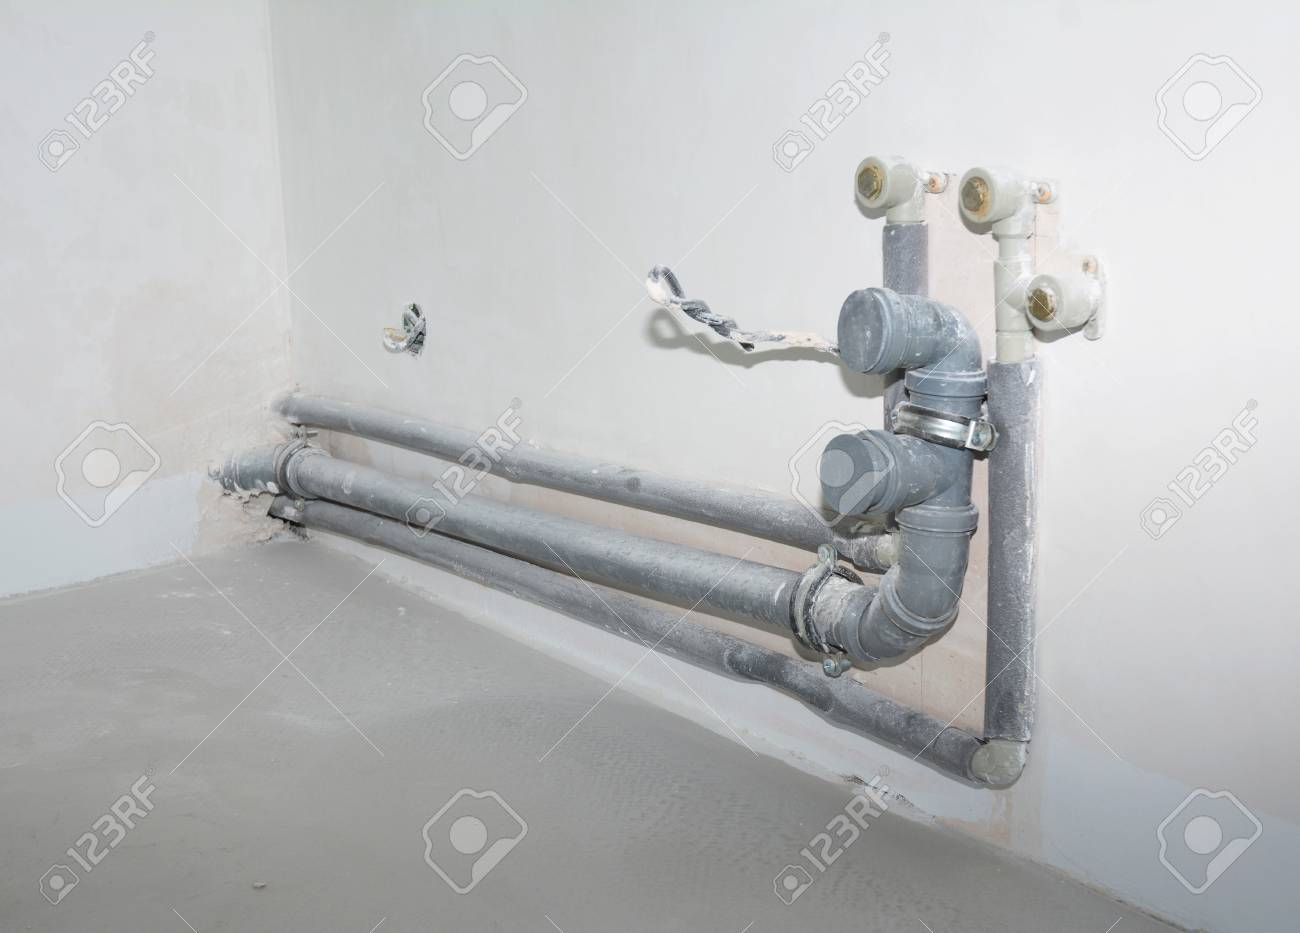 Installing the Plumbing for a Kitchen Sink. Replacing and Repair..